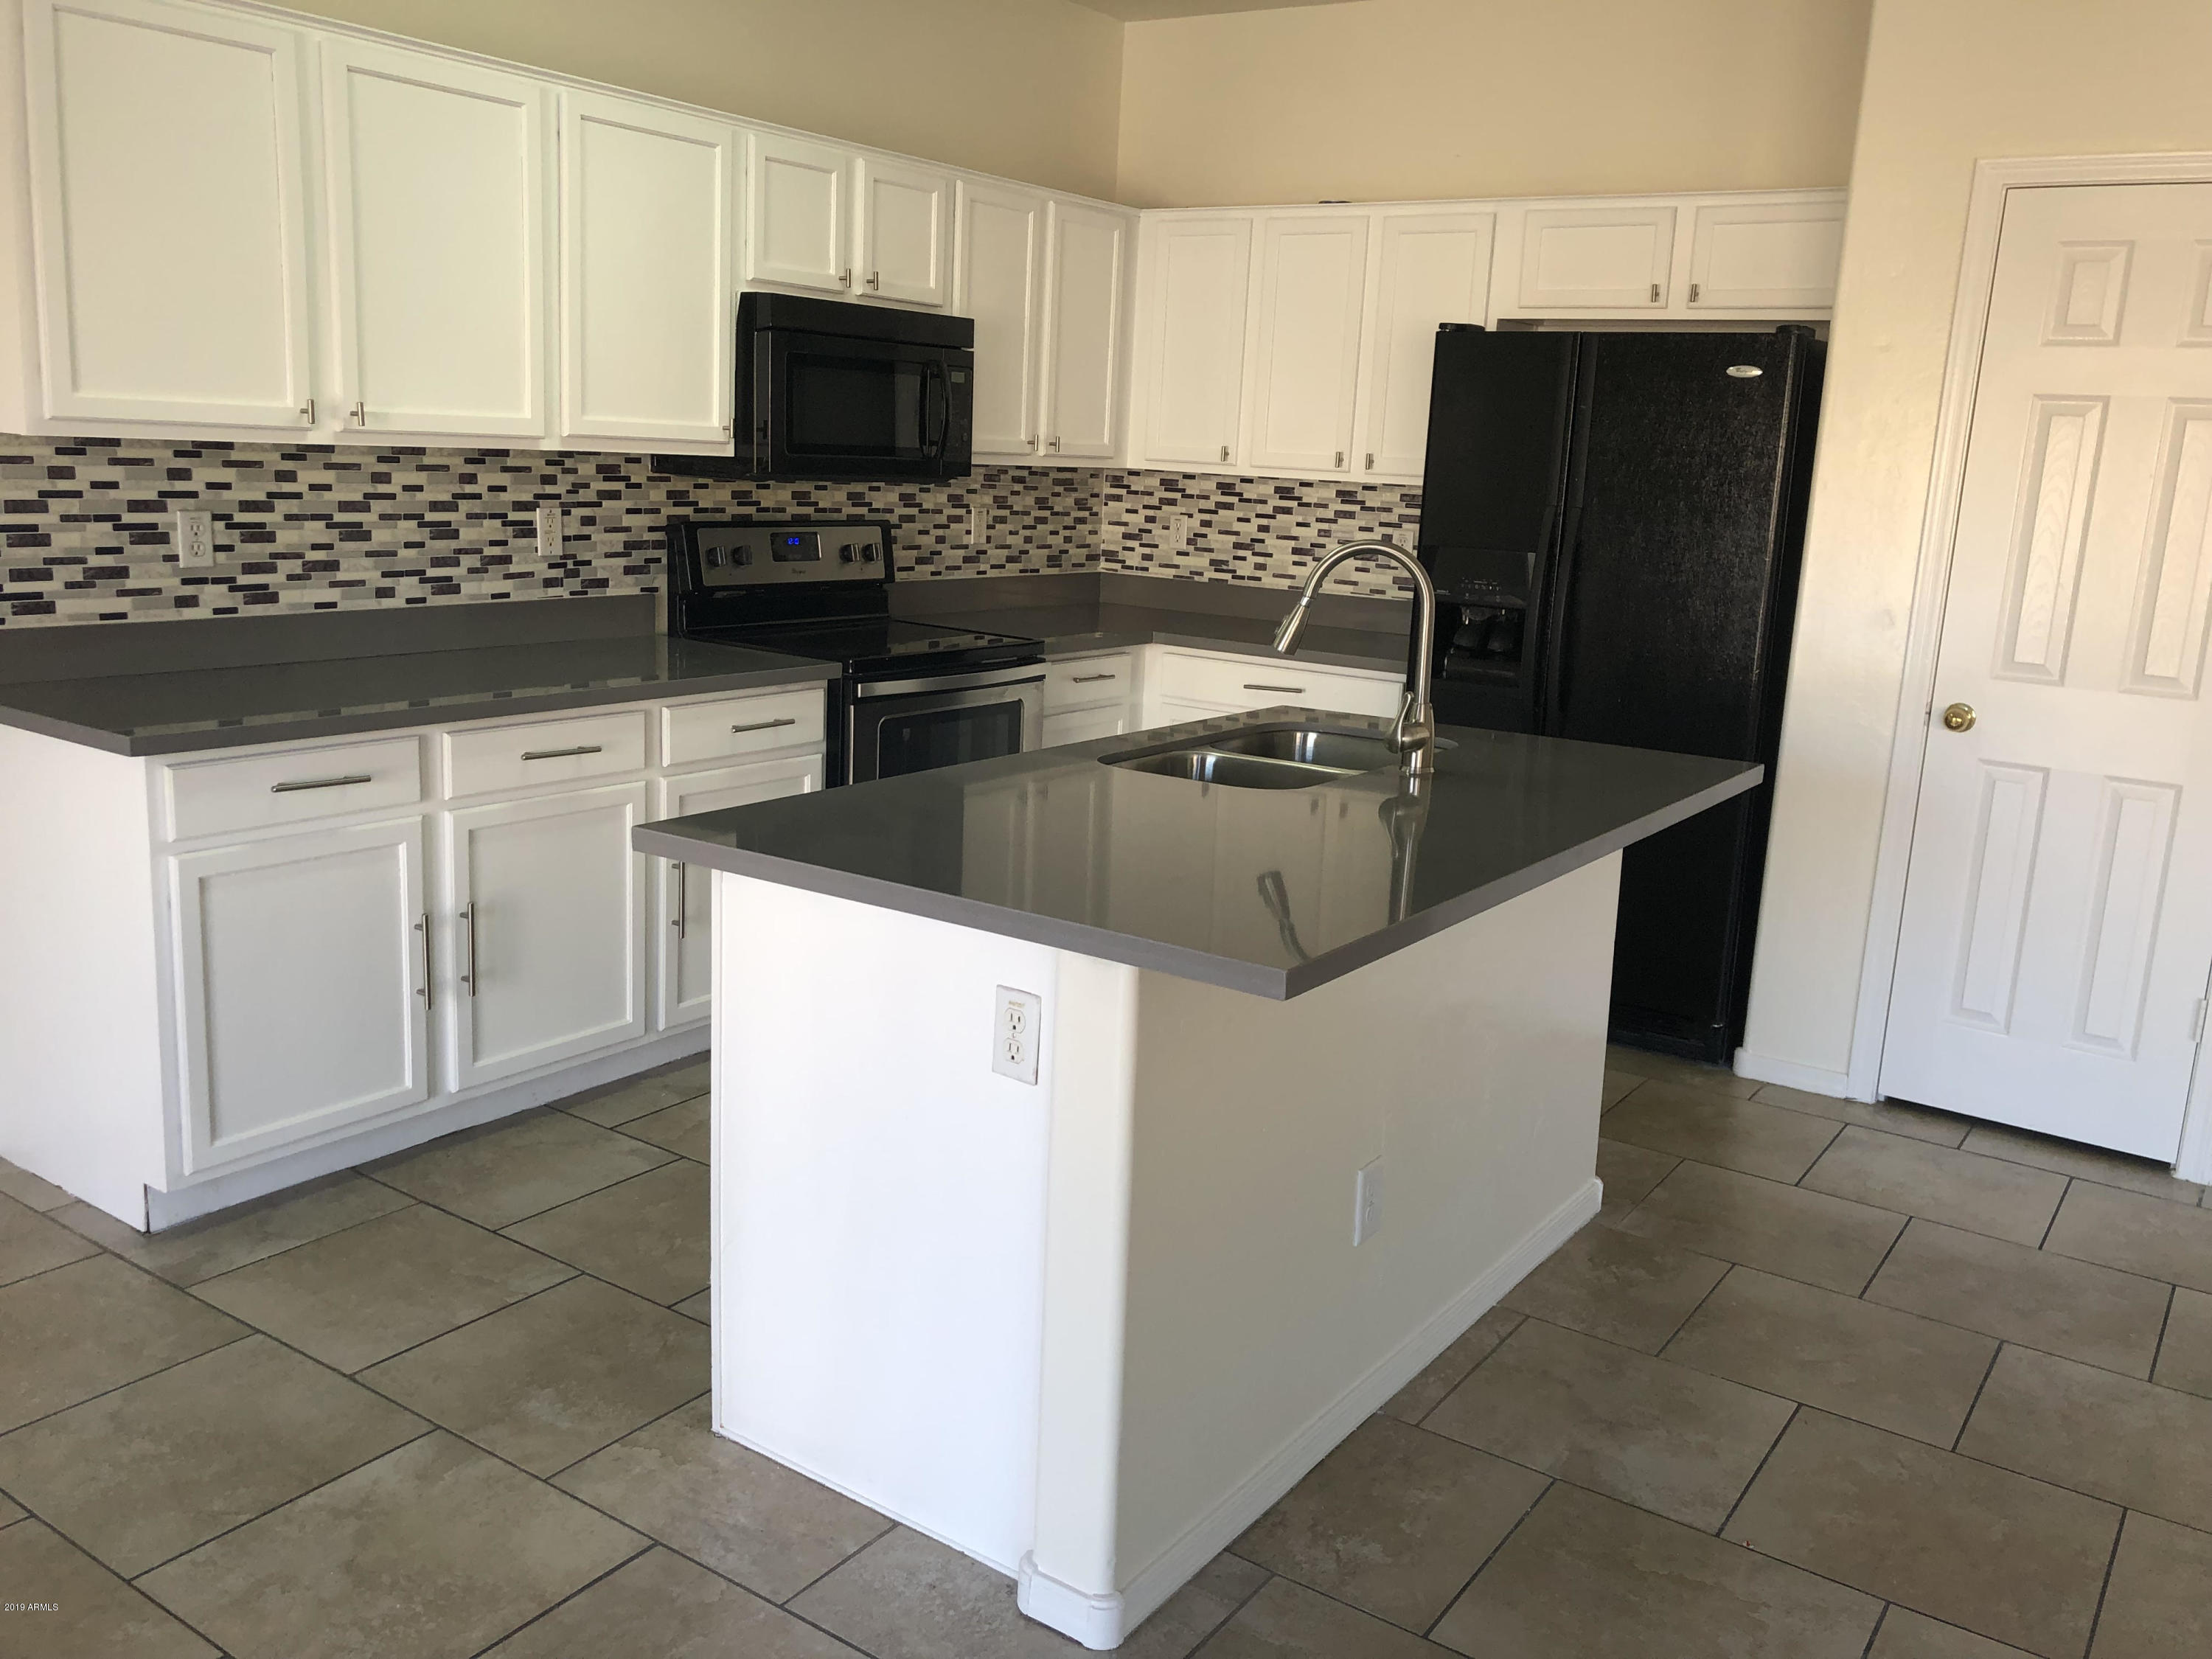 MLS 5997730 10512 W MAGNOLIA Street, Tolleson, AZ 85353 Tolleson Homes for Rent